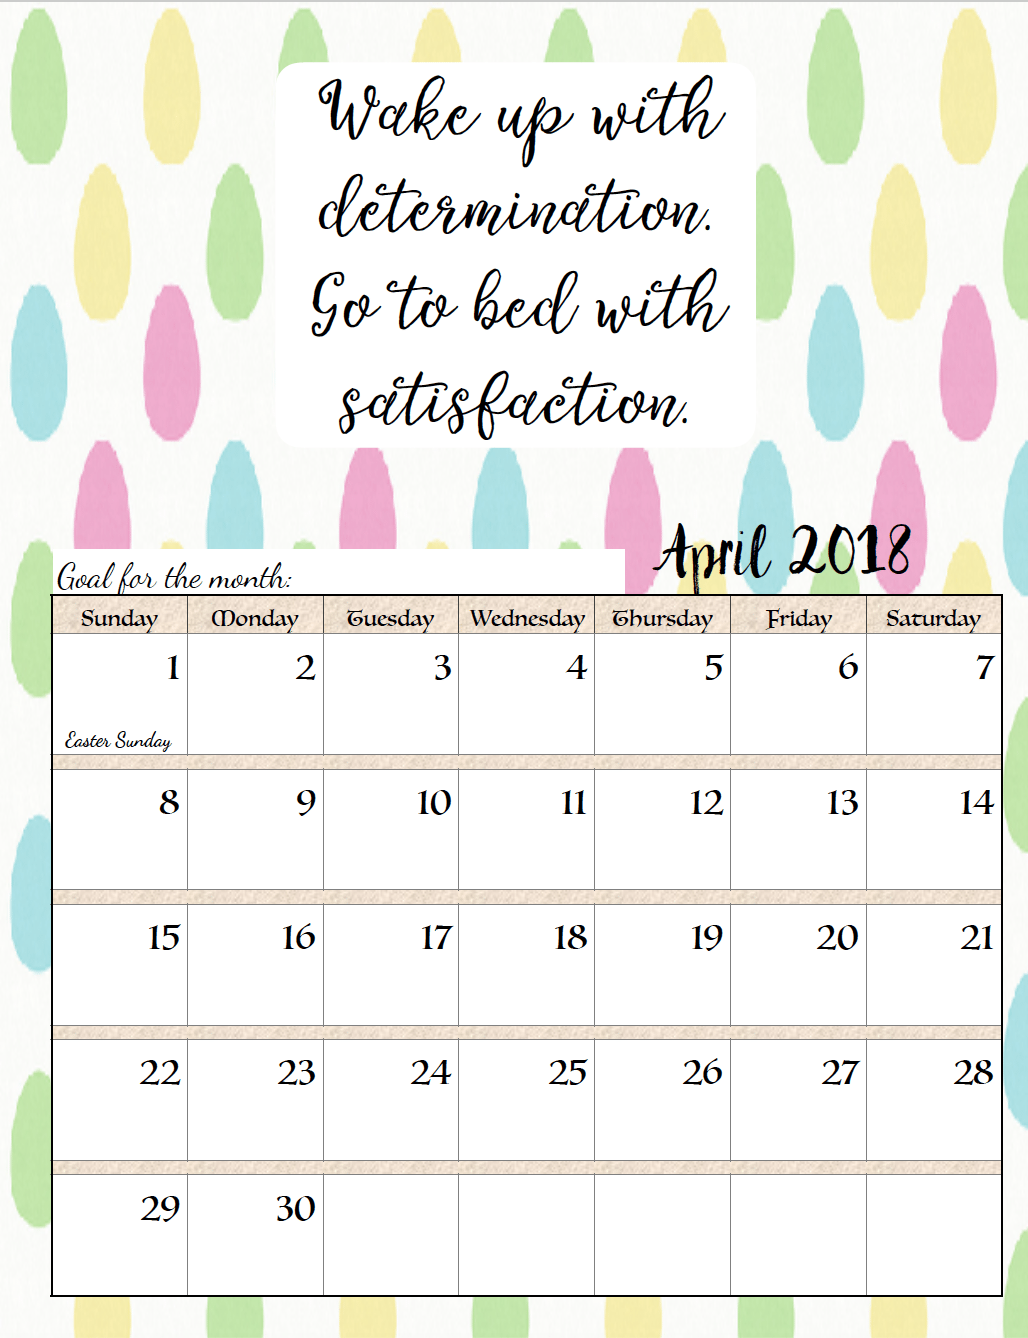 Calendar Planning Quotes : April calendar with motivation quotes